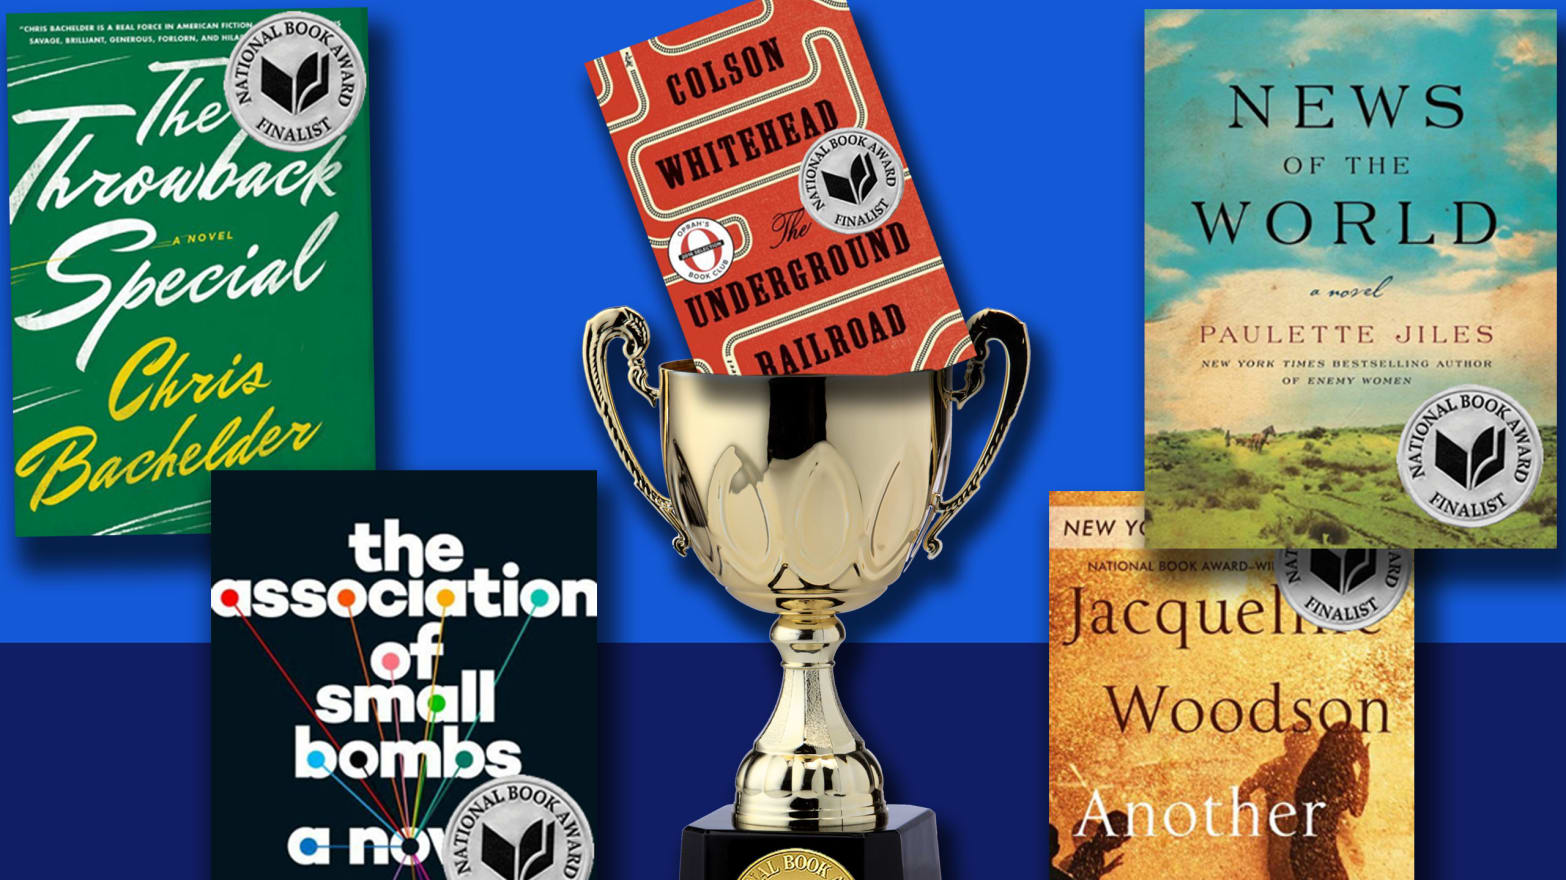 The National Book Award Has Gone to Hell